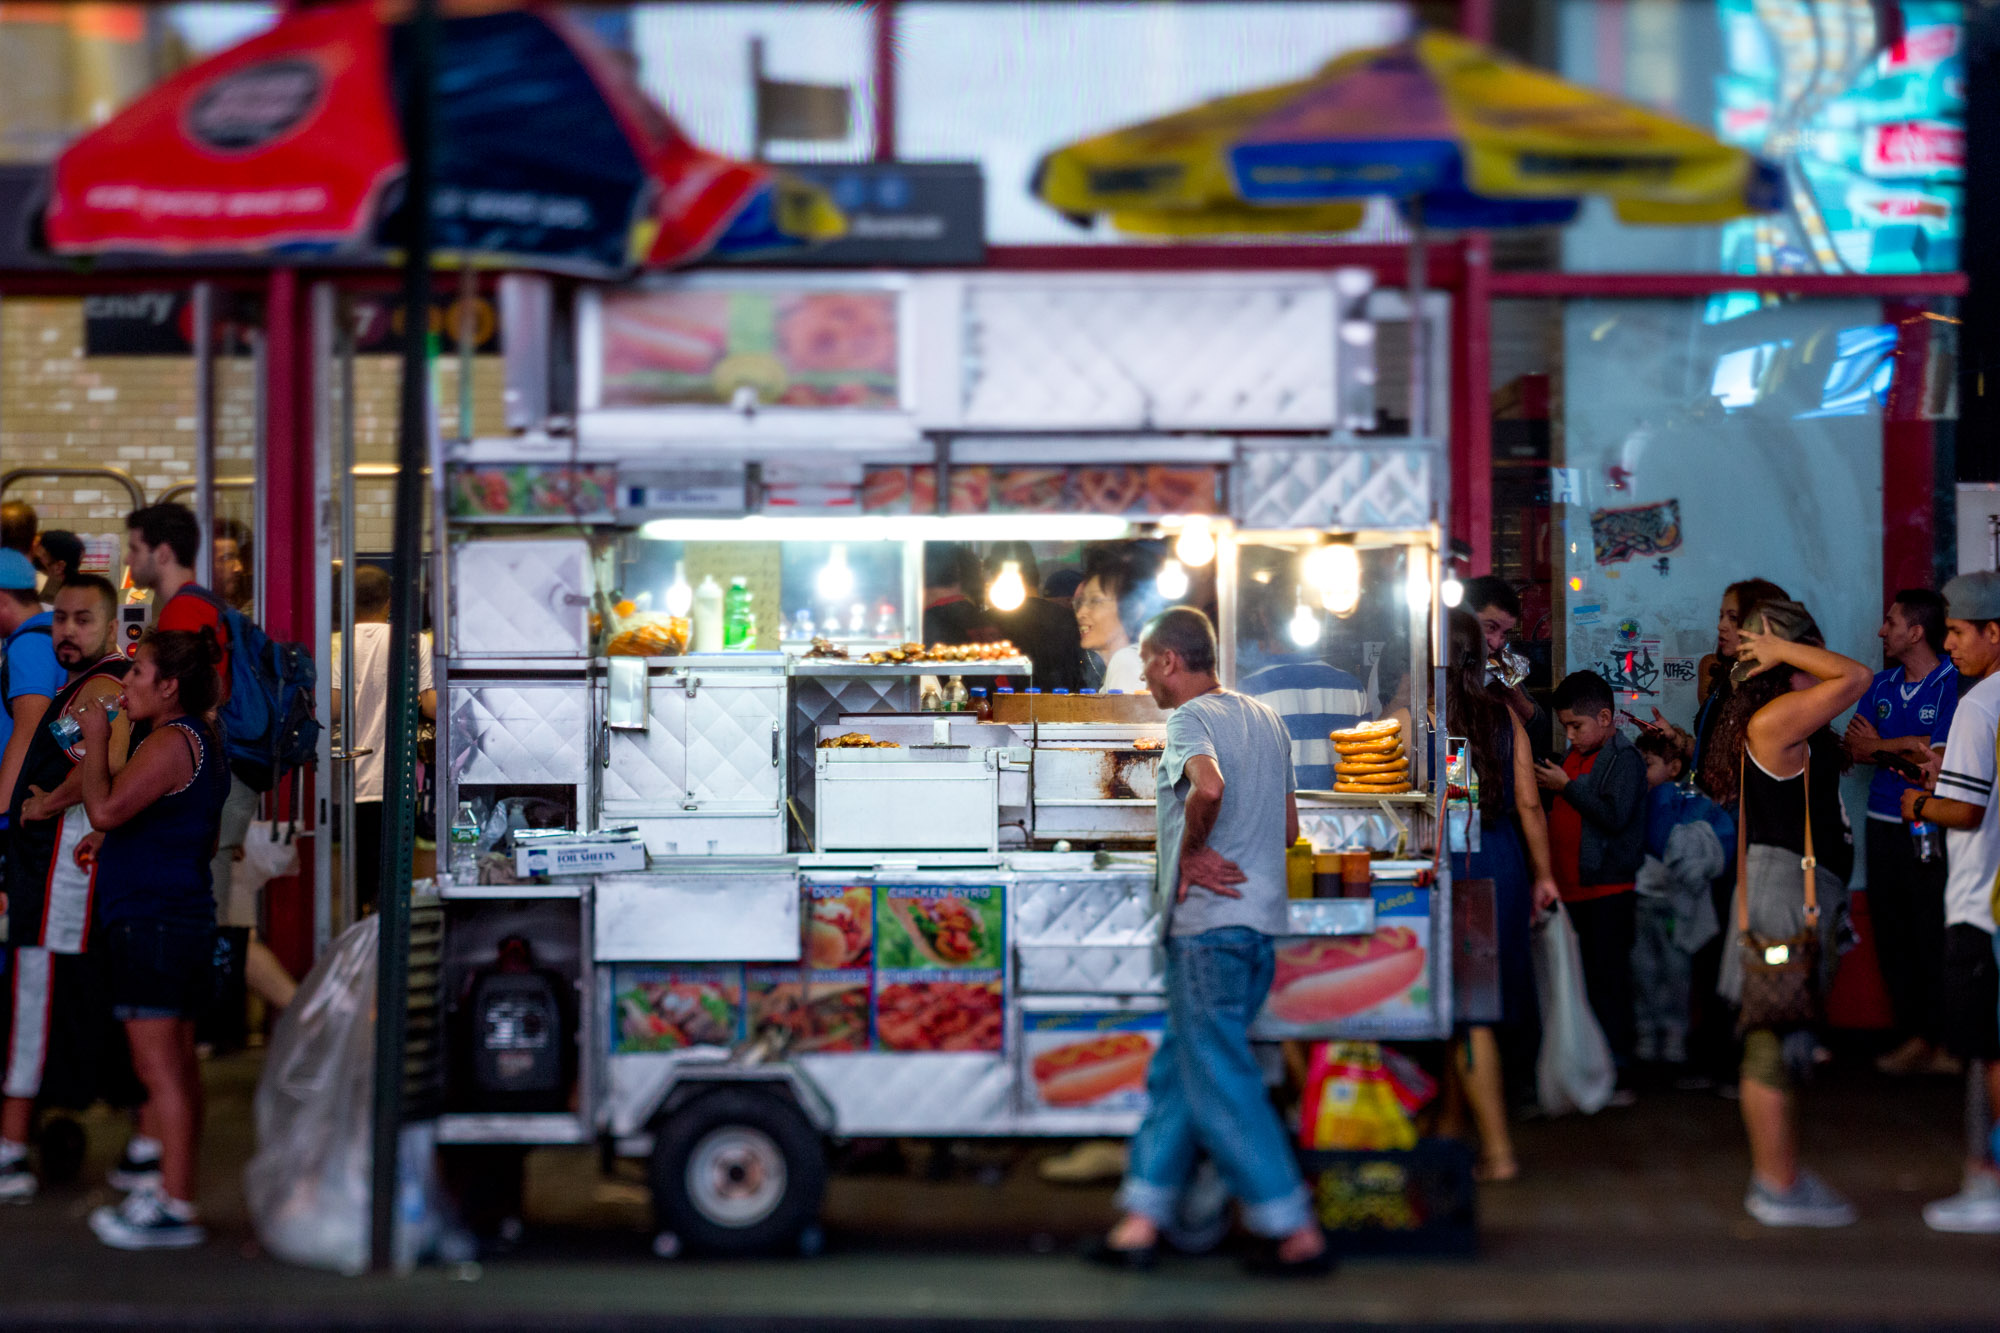 A hardworking man looks tired behind a food cart